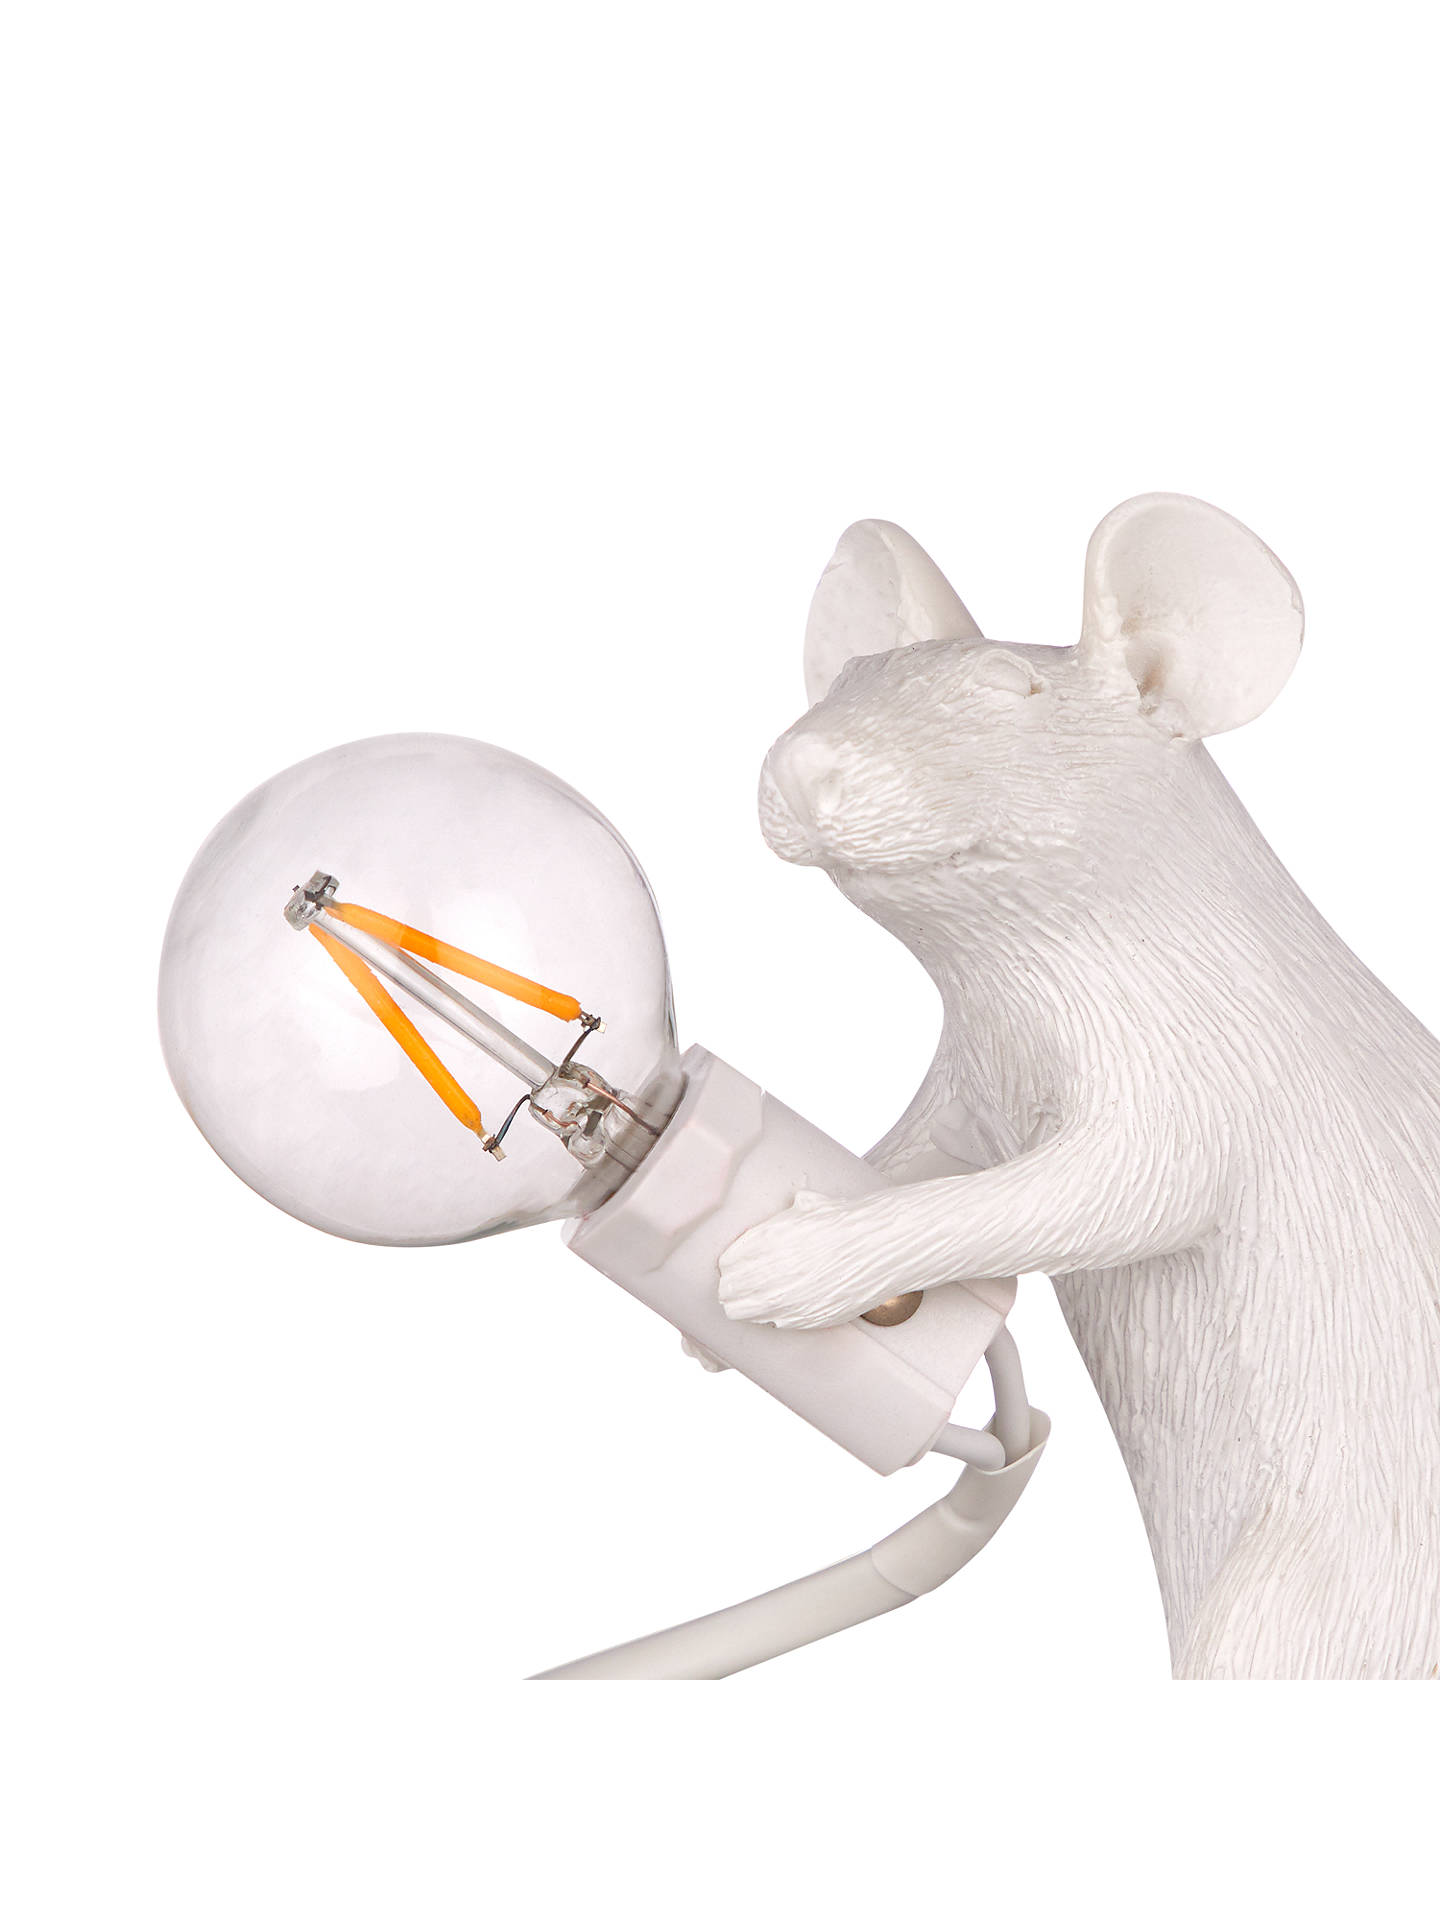 Seletti Sitting Mouse Table Lamp, White